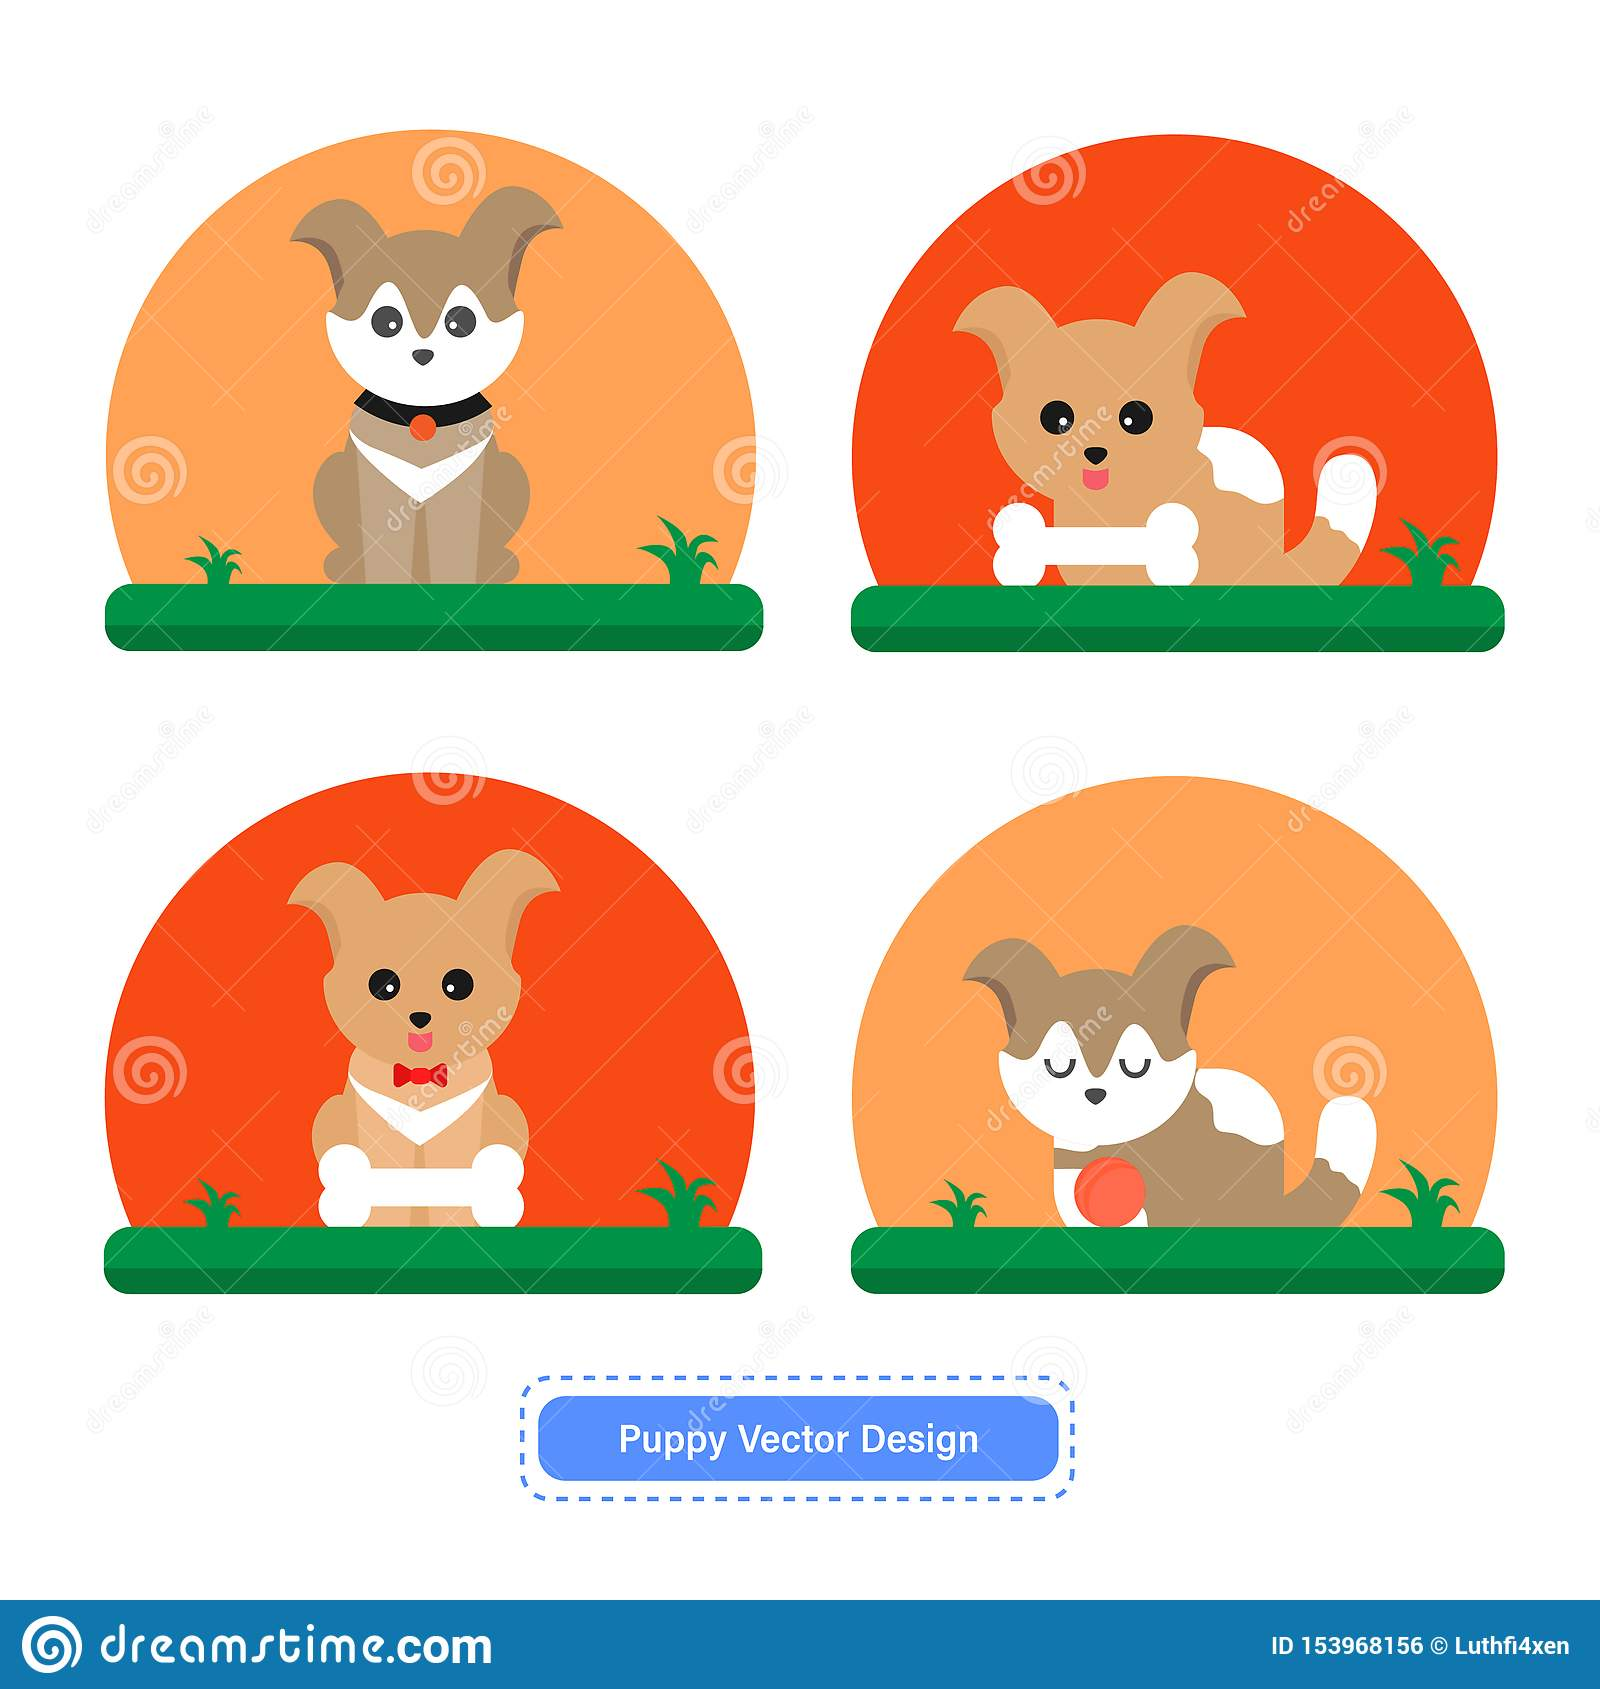 Cute Dog or Puppy Vector for icon templates or presentation background